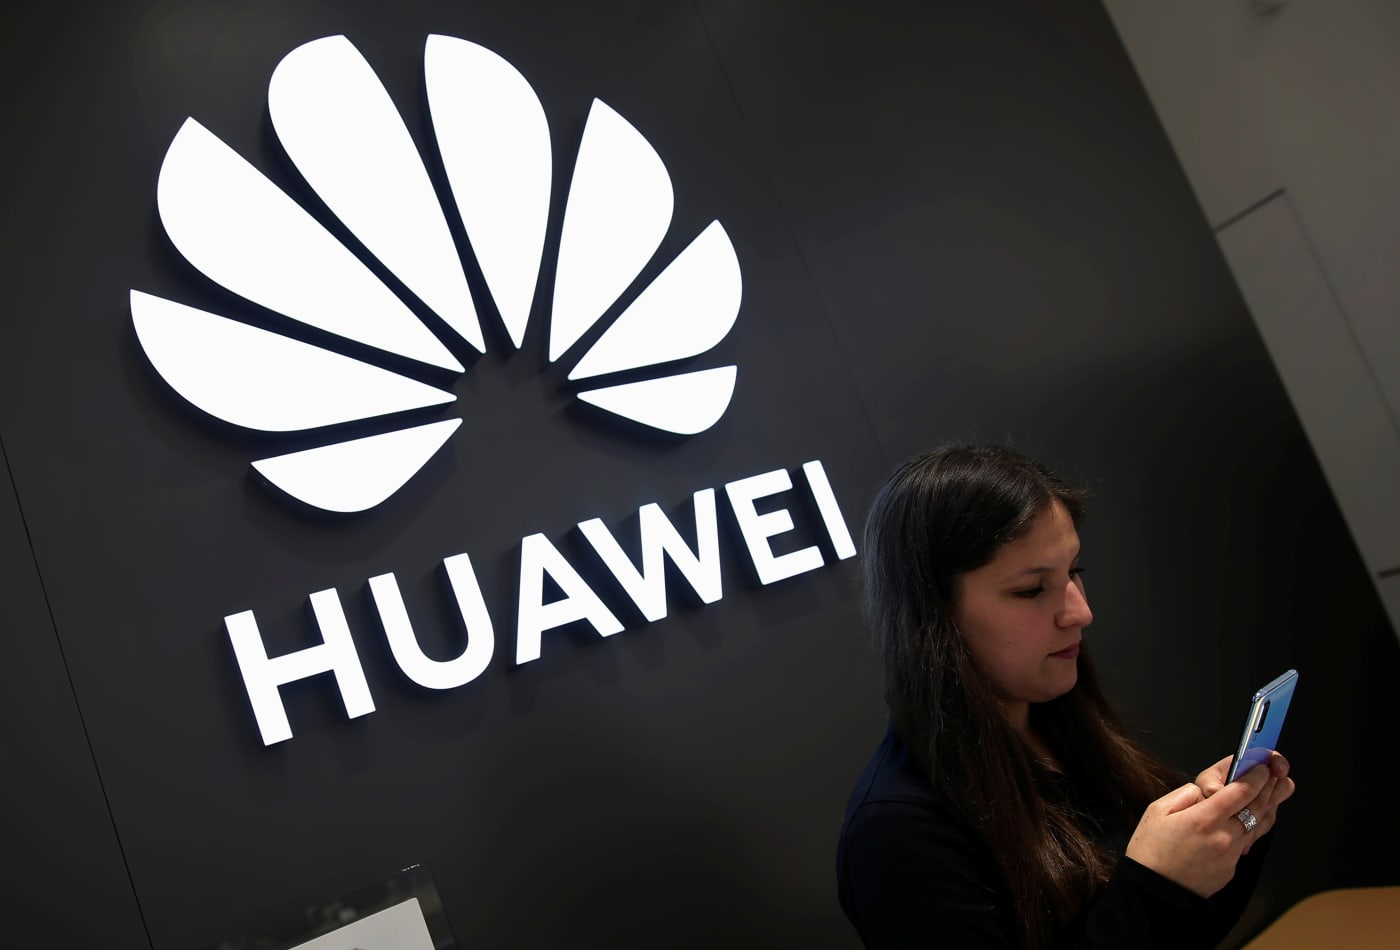 Huawei allowed limited access to UK's 5G networks as Britain defies US pressure